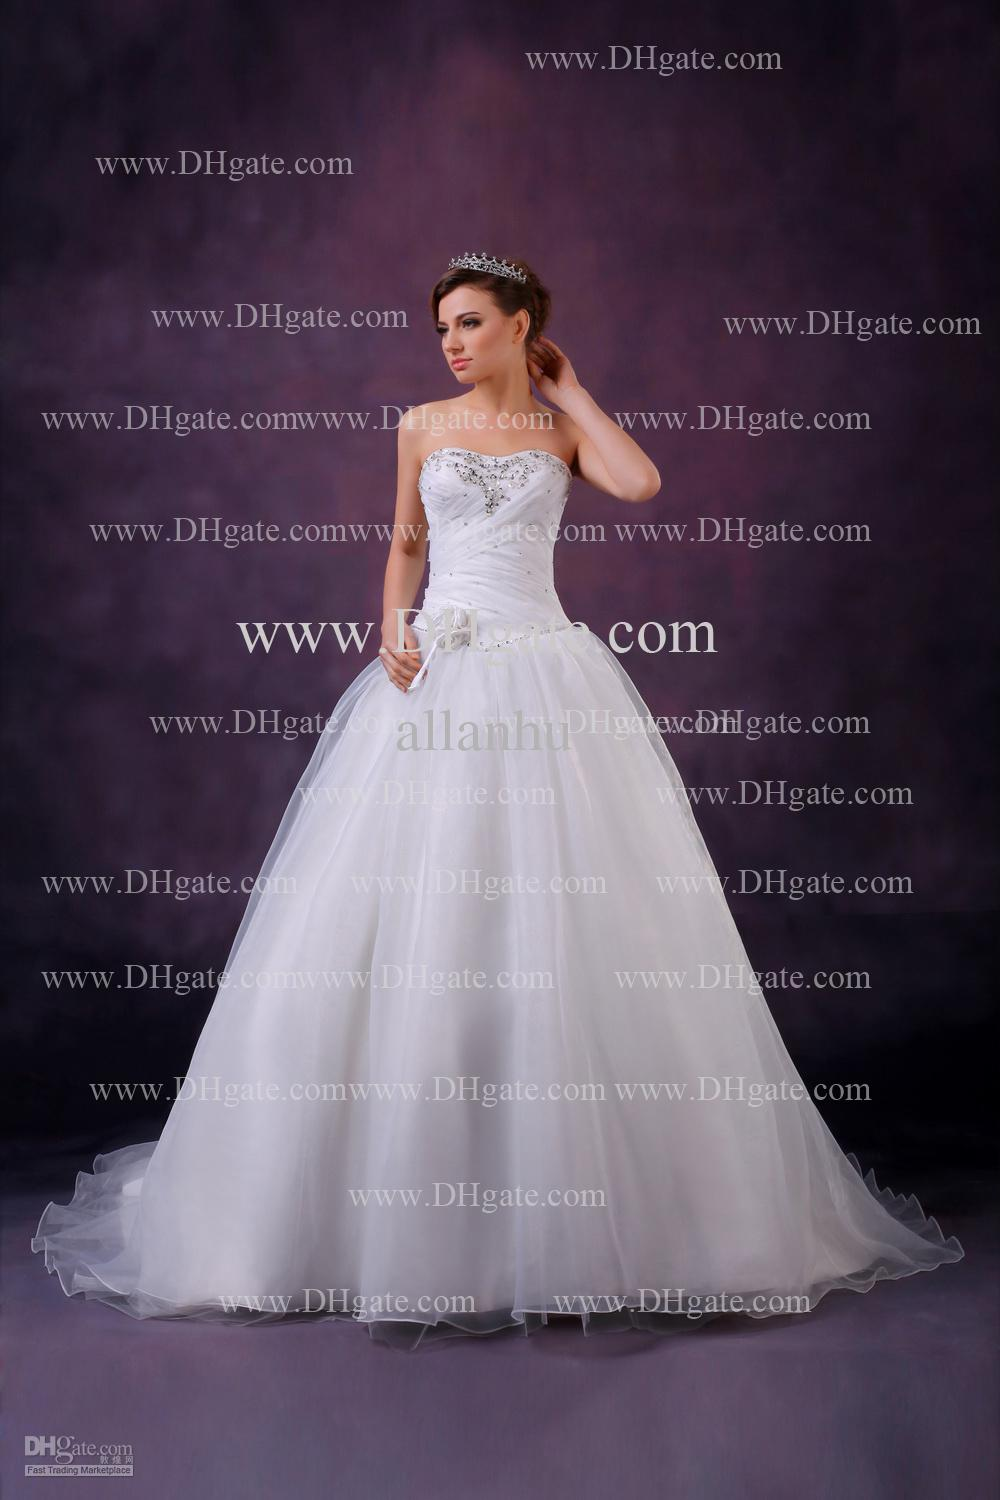 2014 New Amazing Elegant Sexy Sweetheart Bridal Gown With Applique Beads Ruffles A-line Tulle Wedding Dress DHgate0884